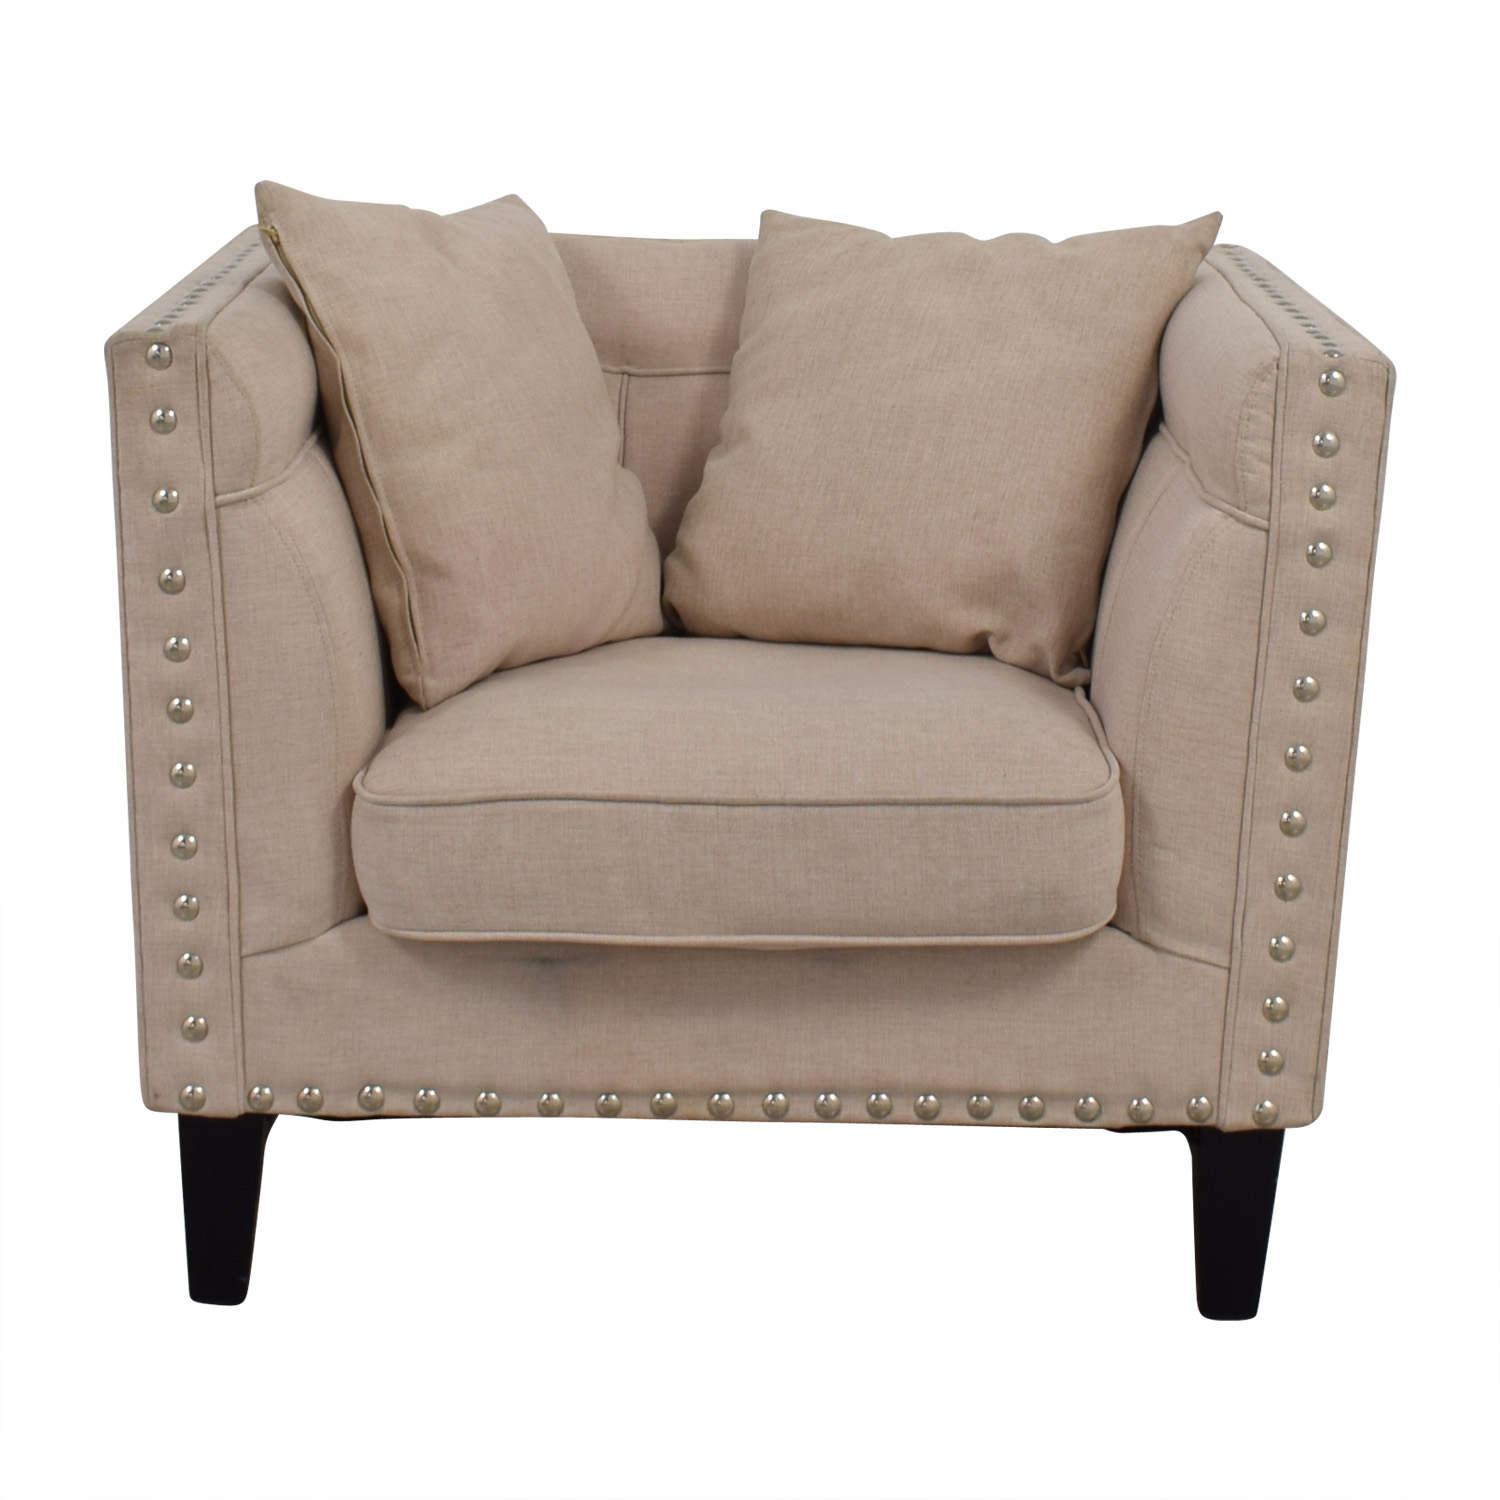 House of Hampton House of Hampton Square Beige Upholstered Nailhead Arm Chair dimensions